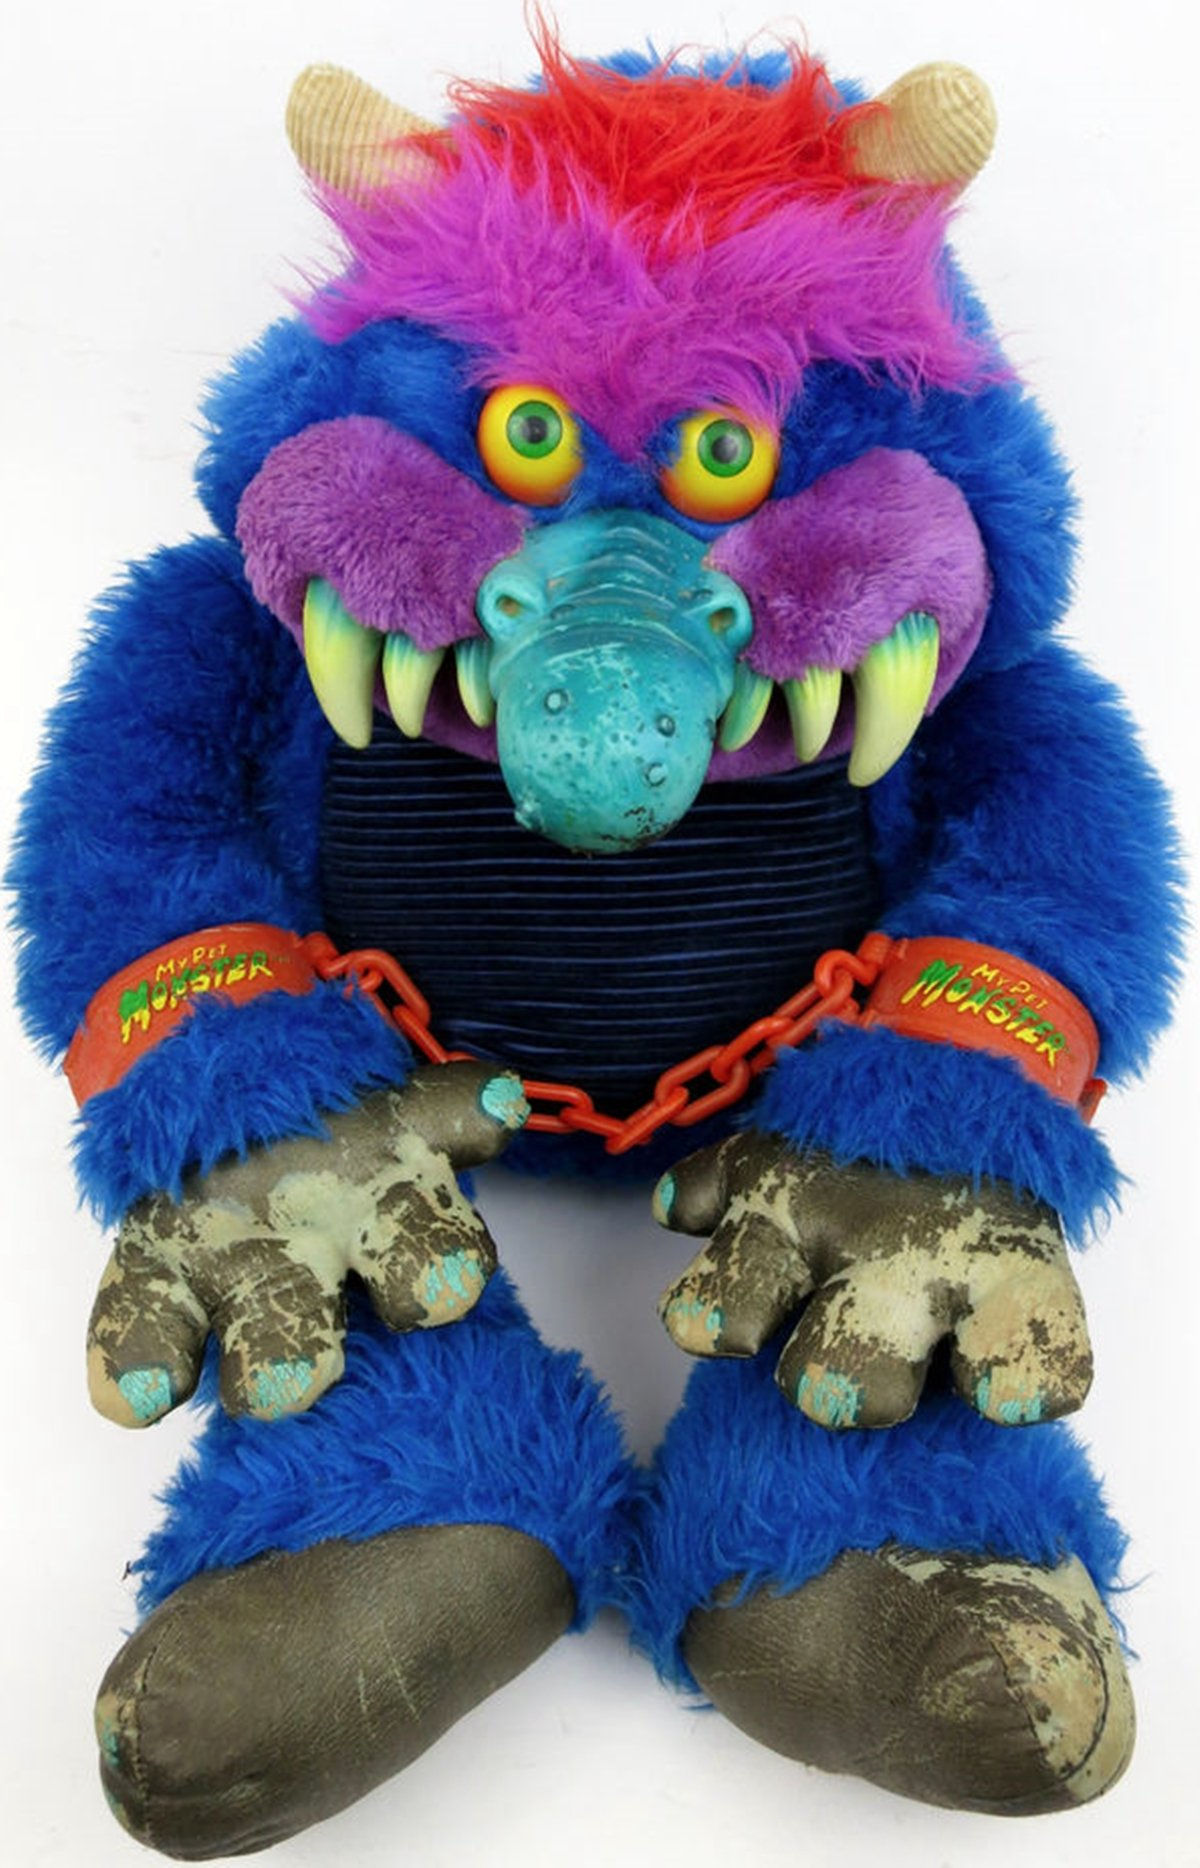 A My Pet Monster from the 1980s